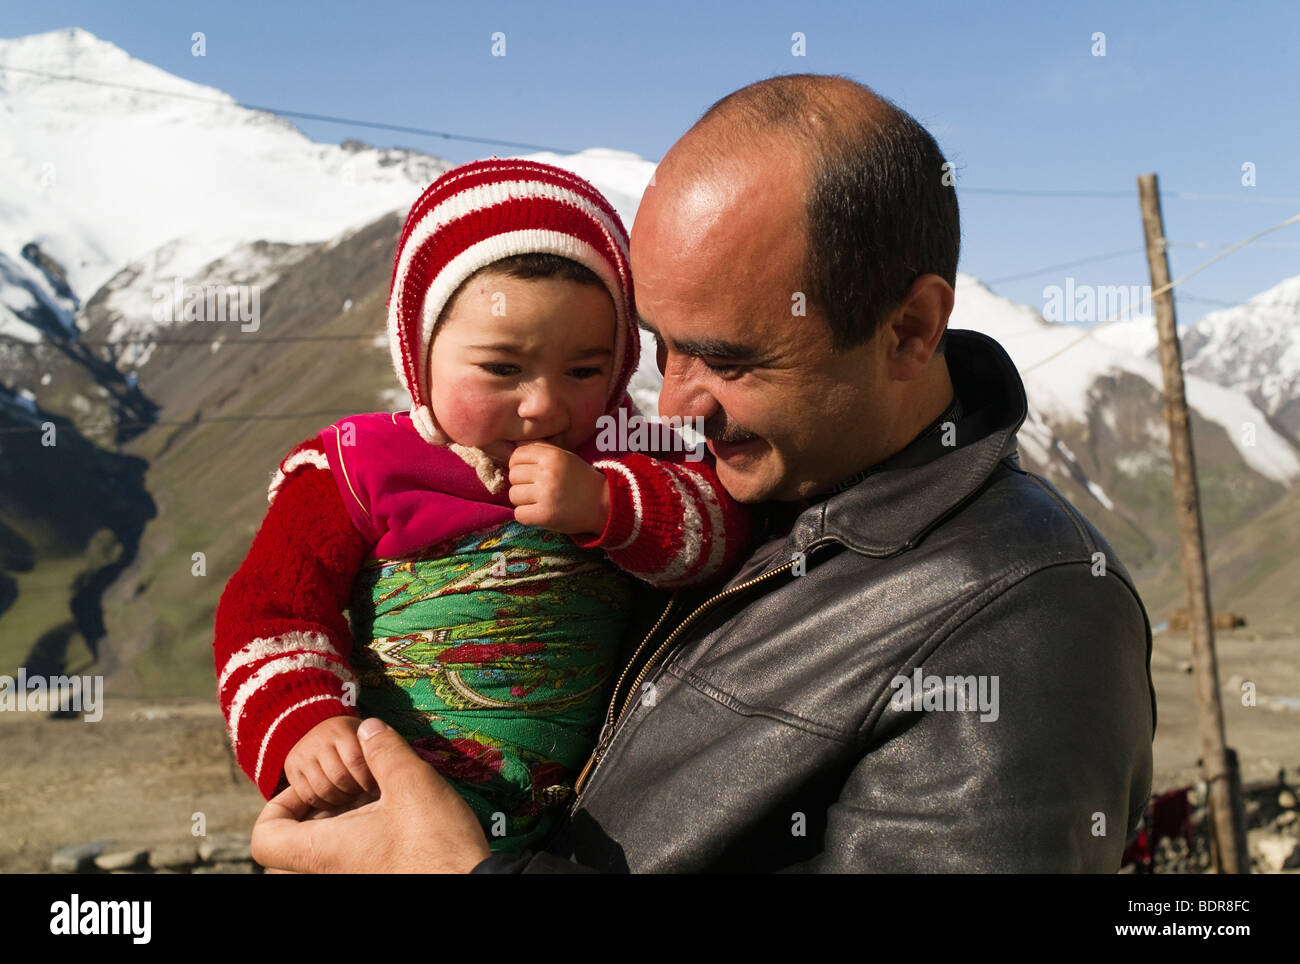 Father and child from the Caucasian mountains in Azerbaijan. Photo taken in Xinaliq, a little, beautiful village. - Stock Image